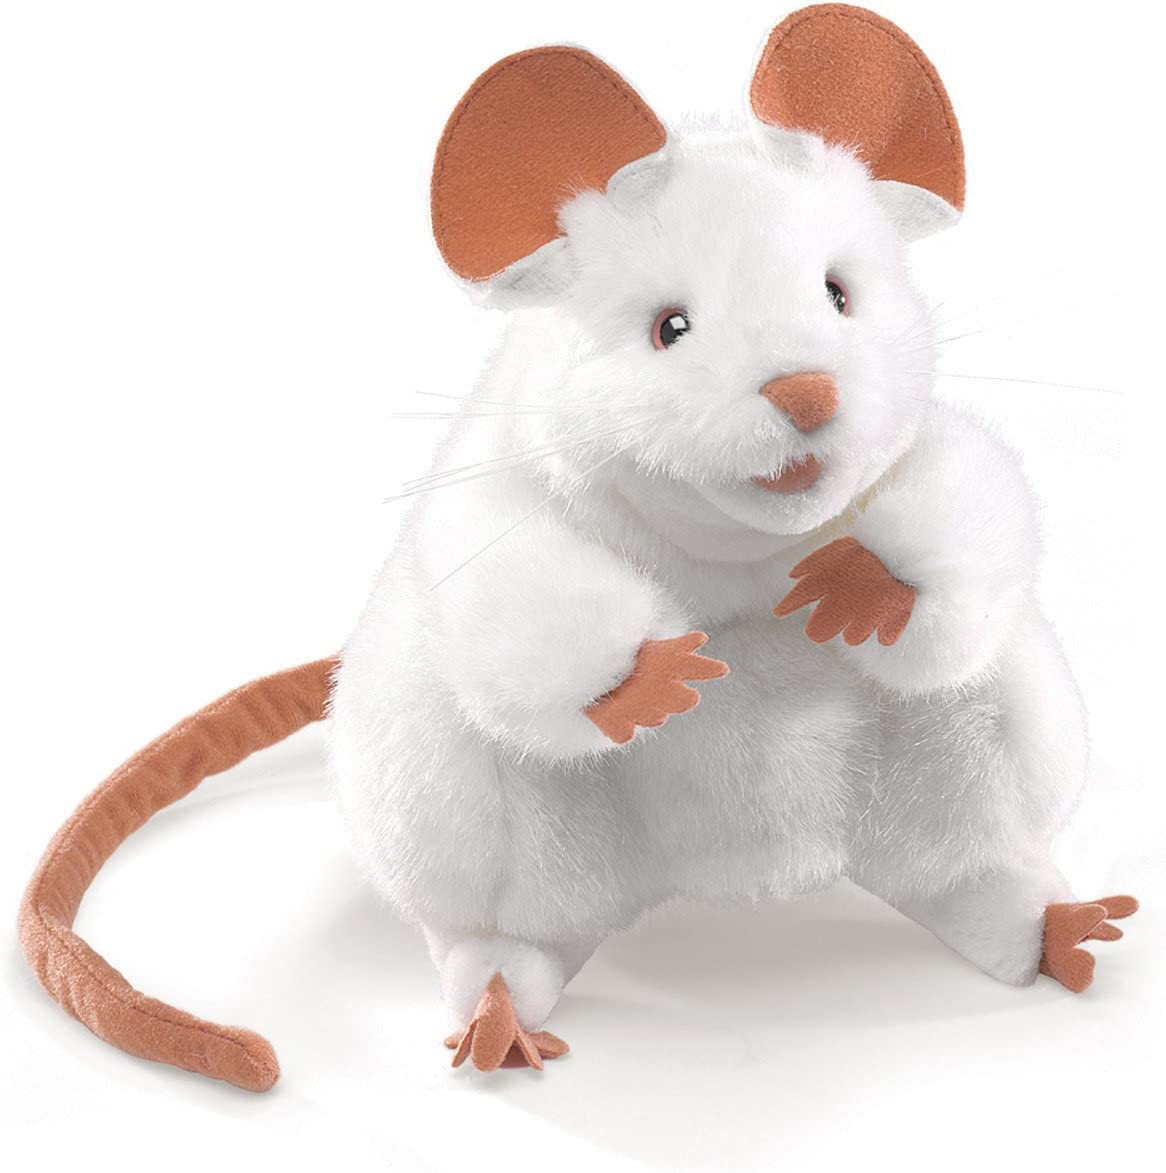 B00000K5CK Folkmanis Mouse Hand Puppet, White 71Y9sChafCL